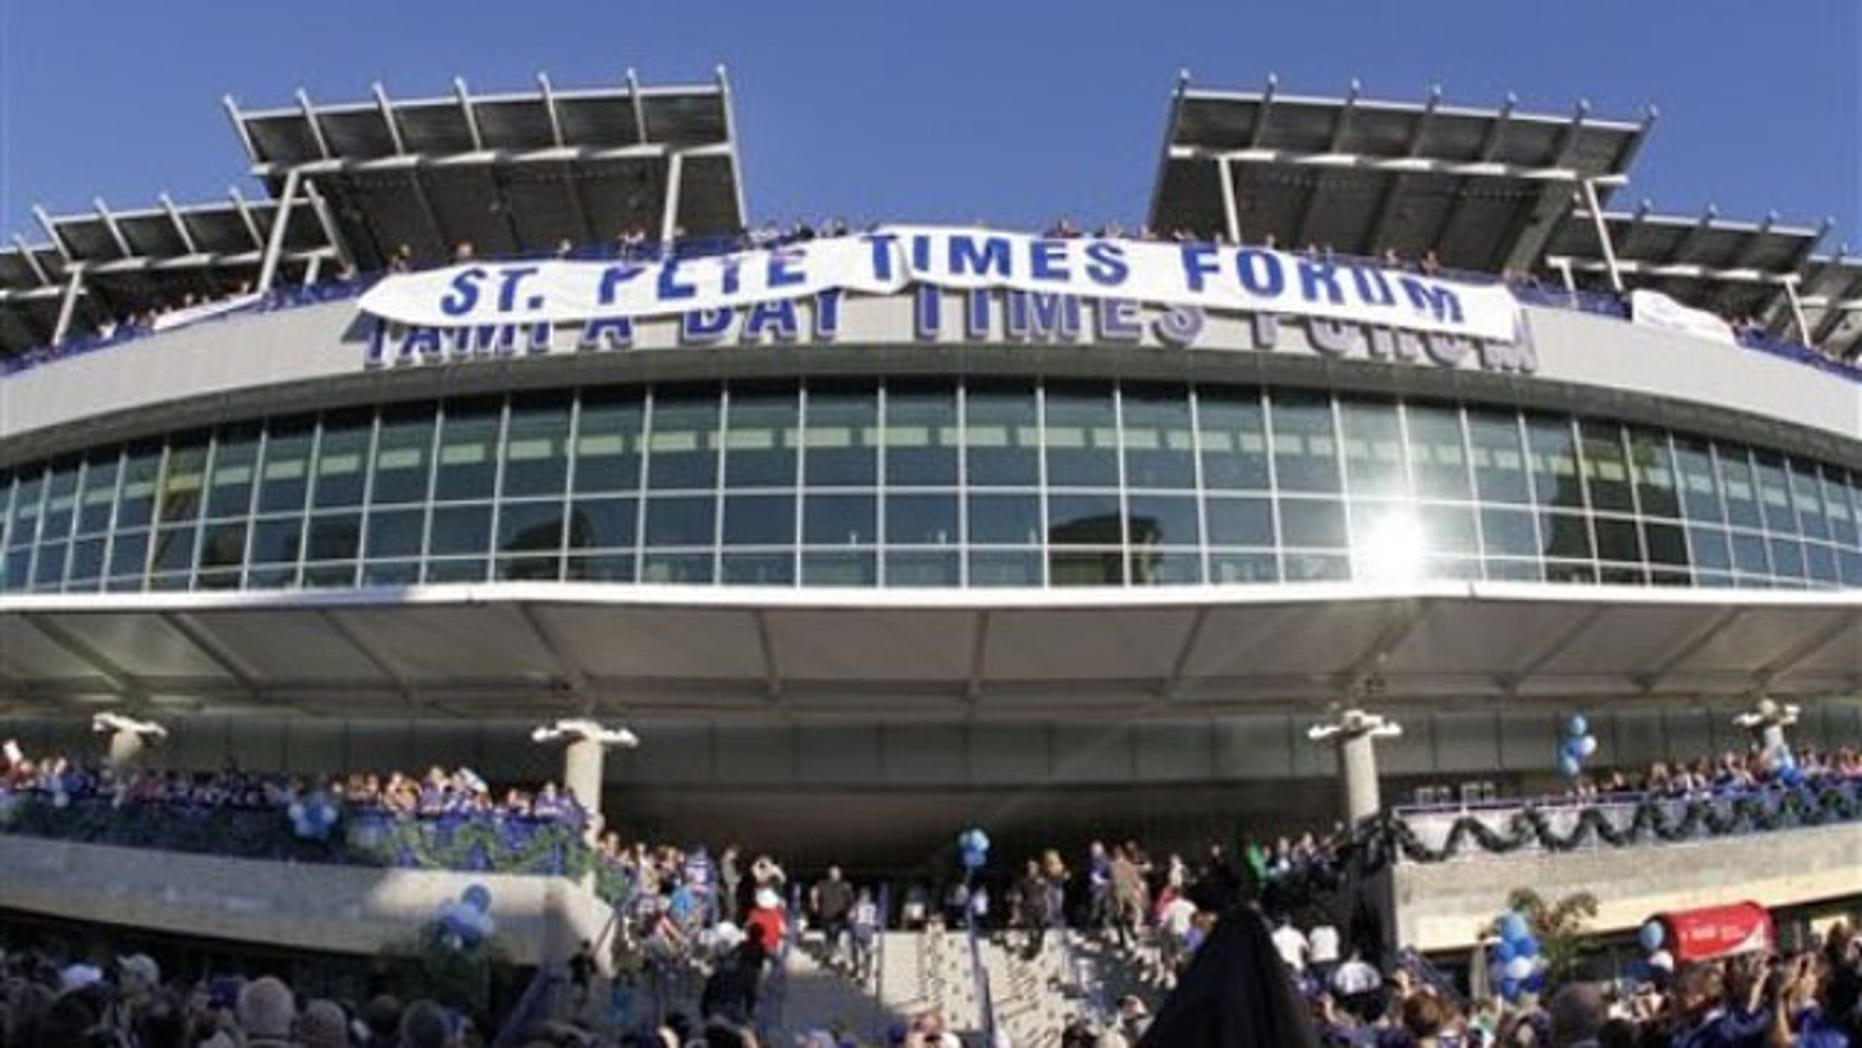 Dec. 31, 2011: Shown here is The Tampa Bay Times Forum, site of the Republican National Convention, in Tampa, Fla.